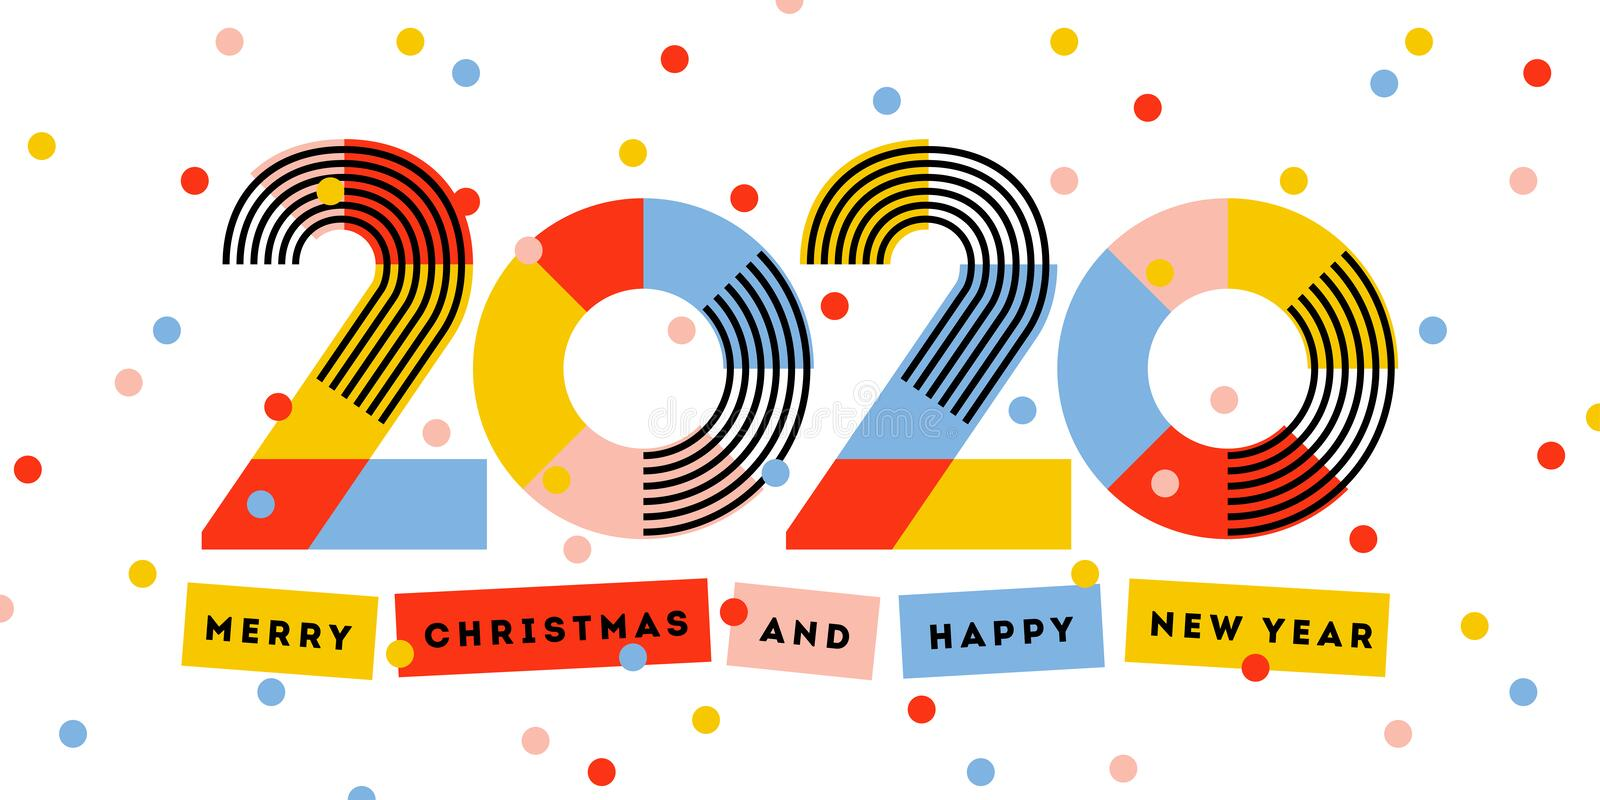 Merry Christmas and Happy New Year 2020 greeting card. Multicolored abstract numbers with ribbons and confetti isolated on white vector illustration